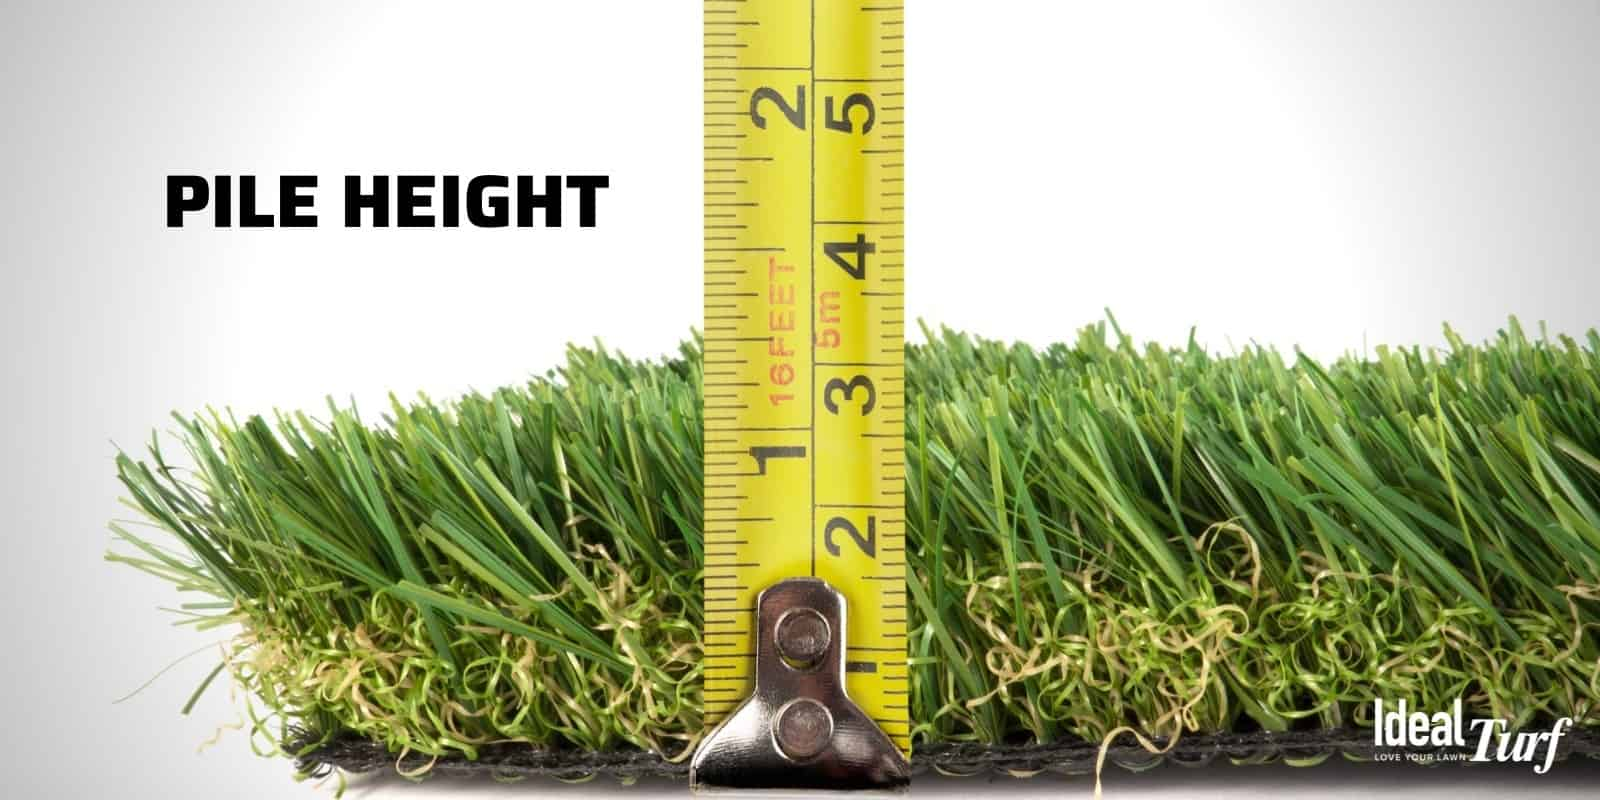 Turf product sample with tape measure showing the pile height